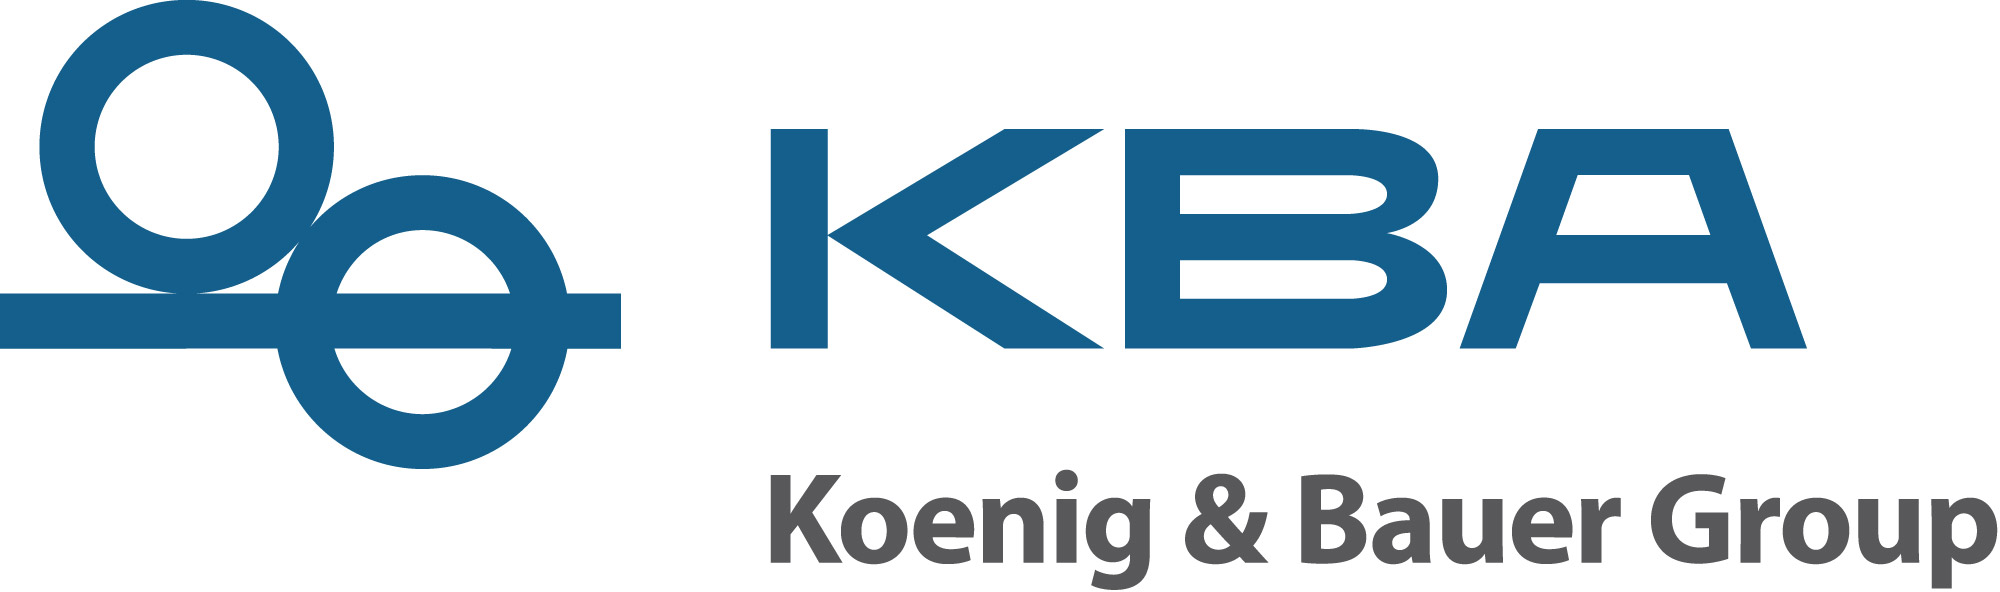 Koenig&Baur Group